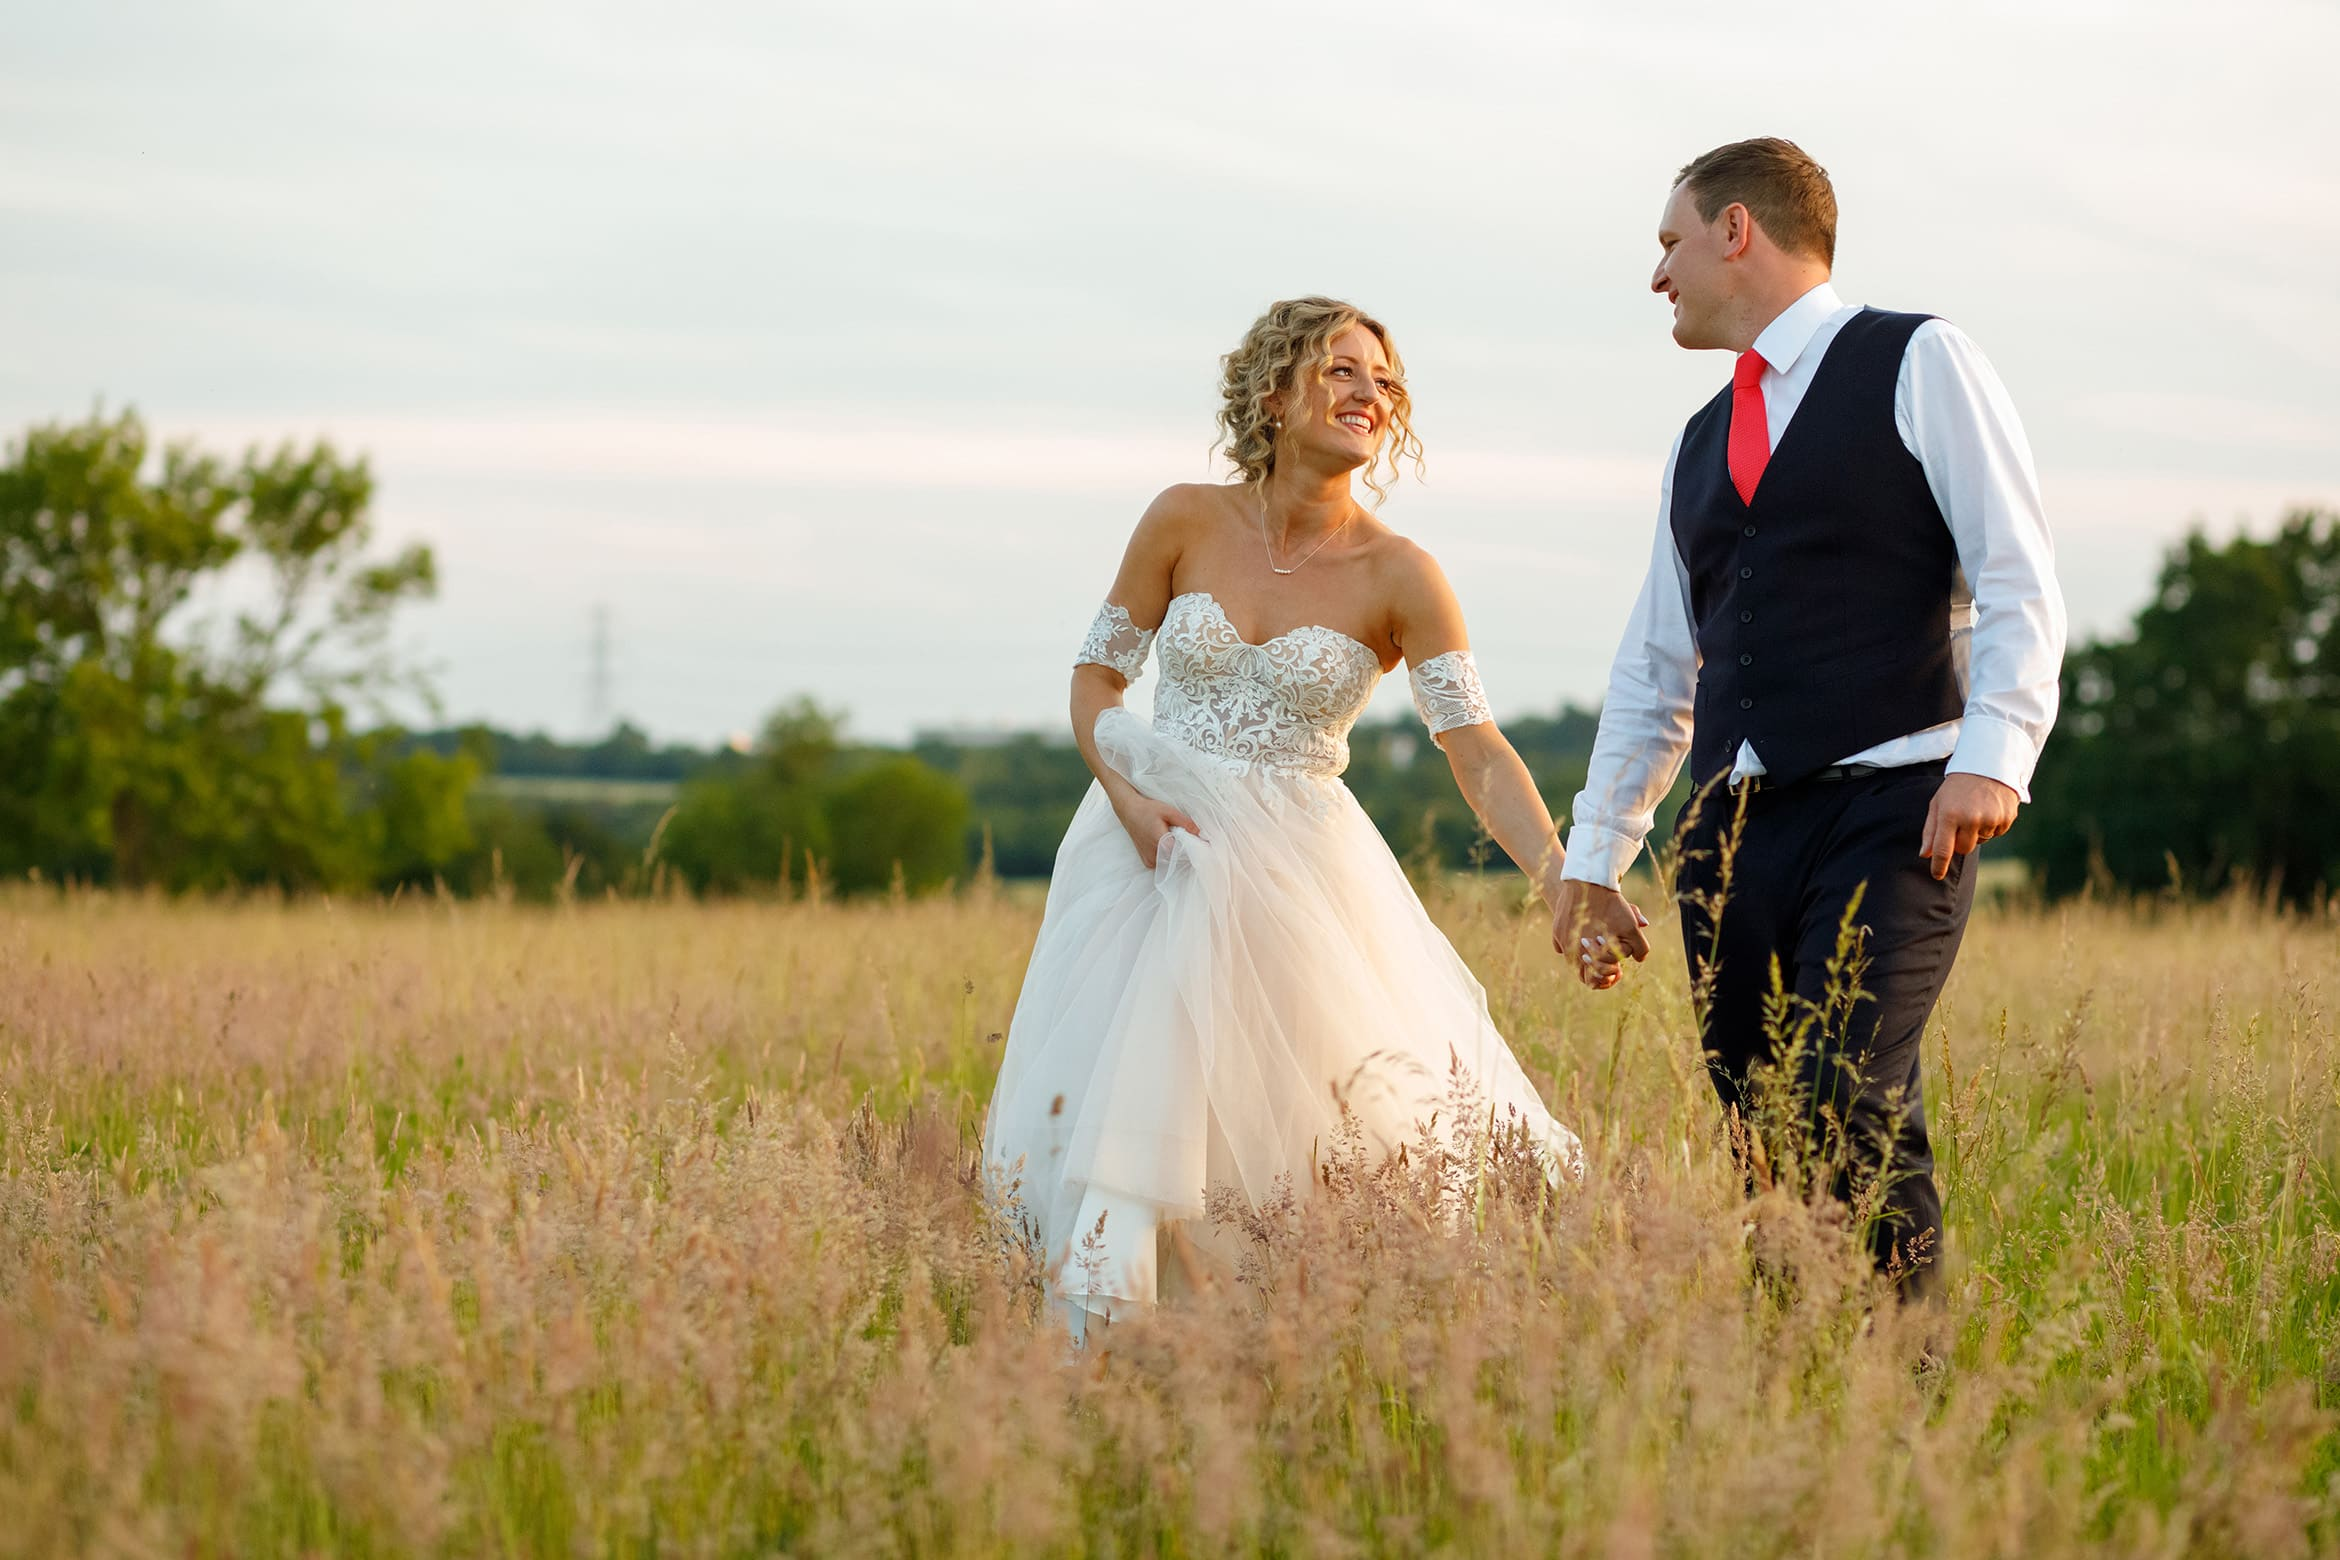 wedding portraits in a field